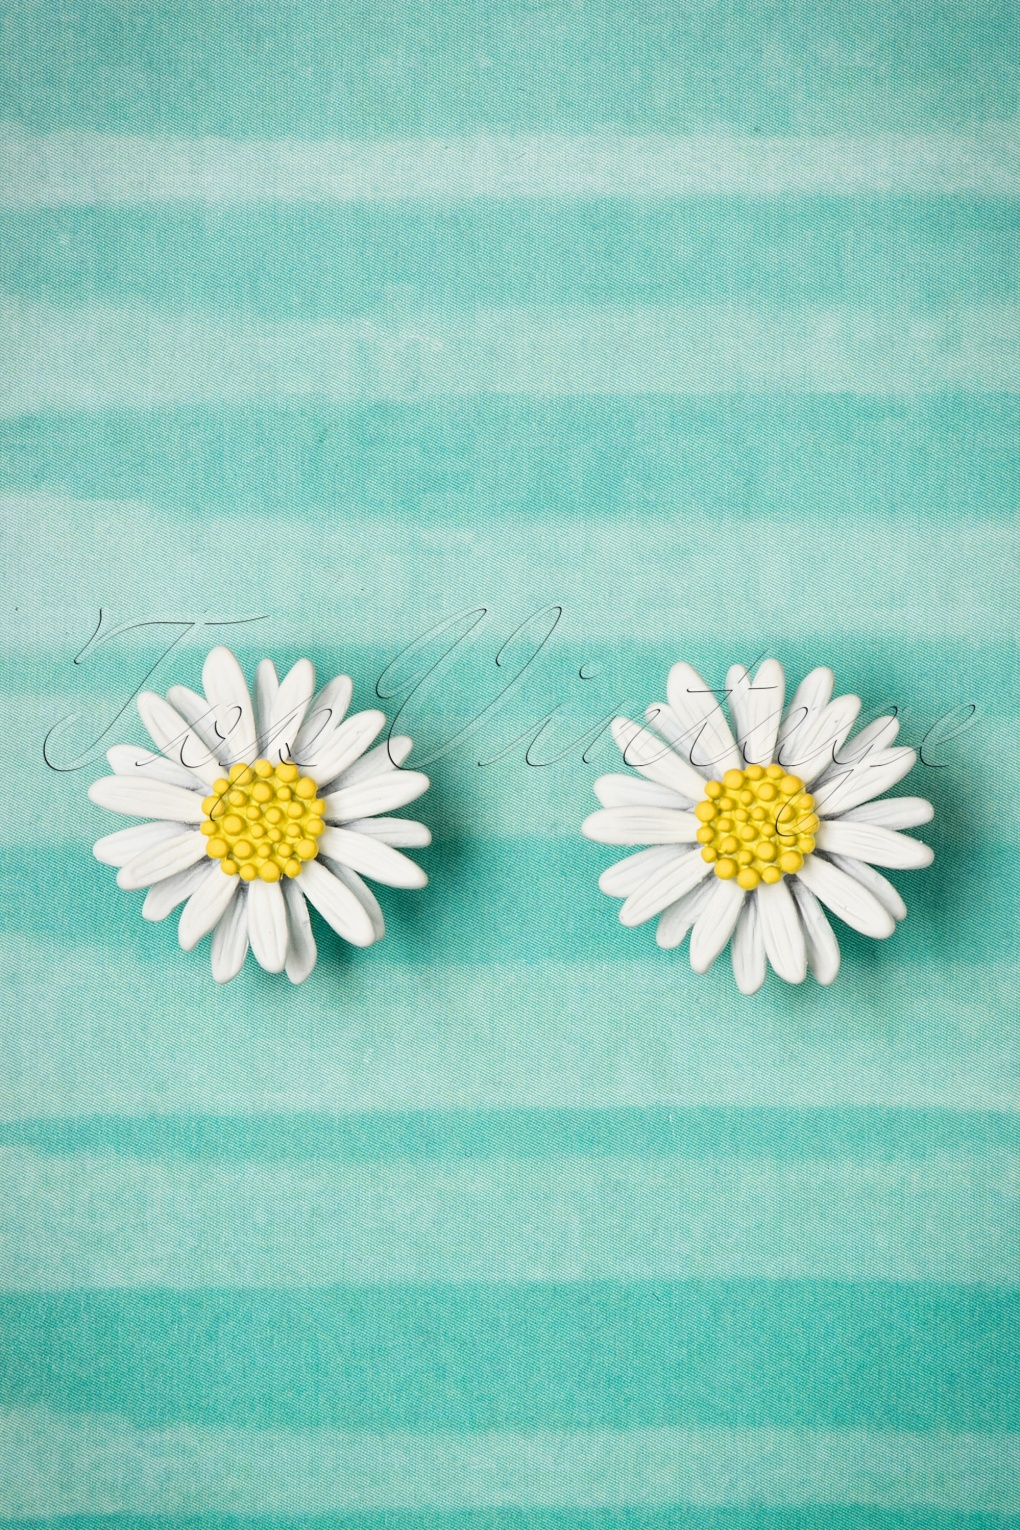 Vintage Style Jewelry, Retro Jewelry 60s Cute As A Daisy Stud Earrings in White £8.75 AT vintagedancer.com